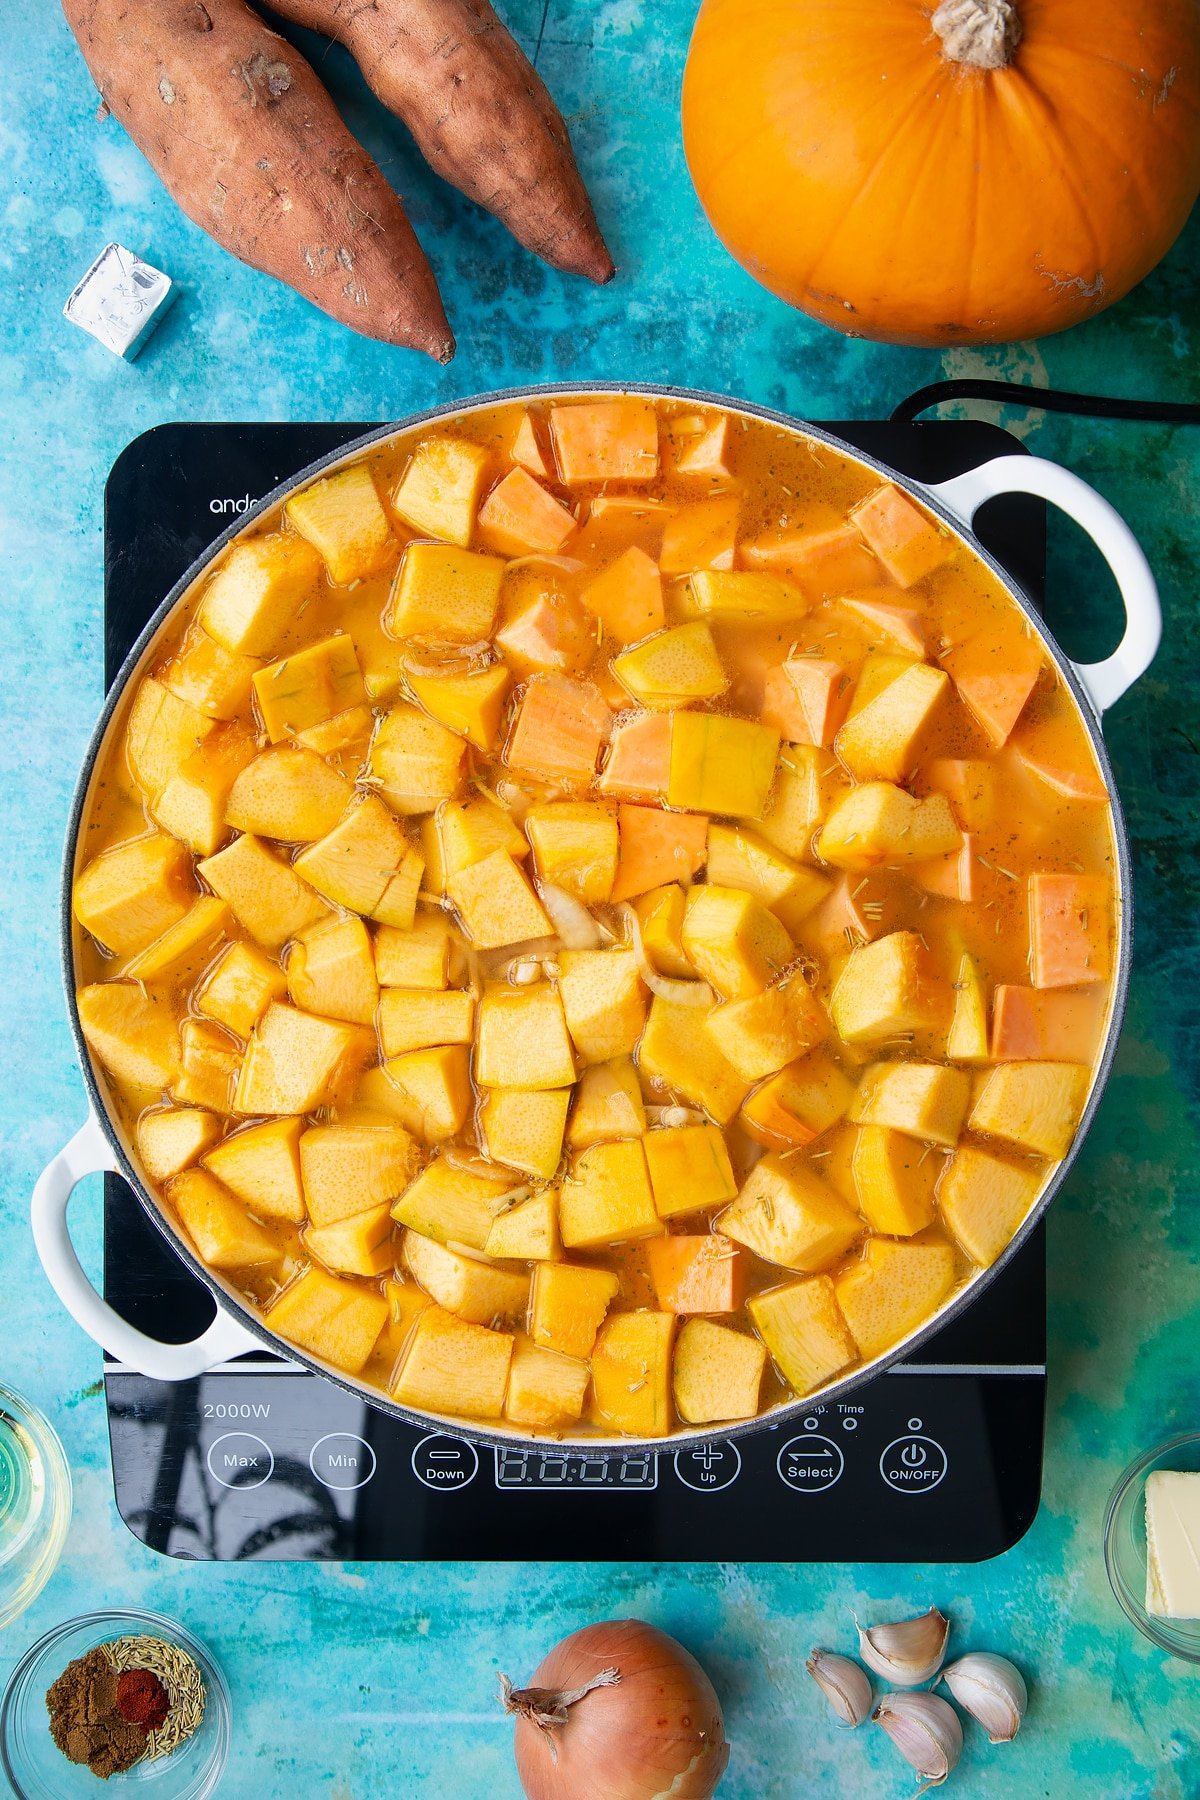 Pumpkin, sweet potato, onion, garlic and stock in a large, shallow pan, from above. Ingredients to make pumpkin and sweet potato soup surround the pan.